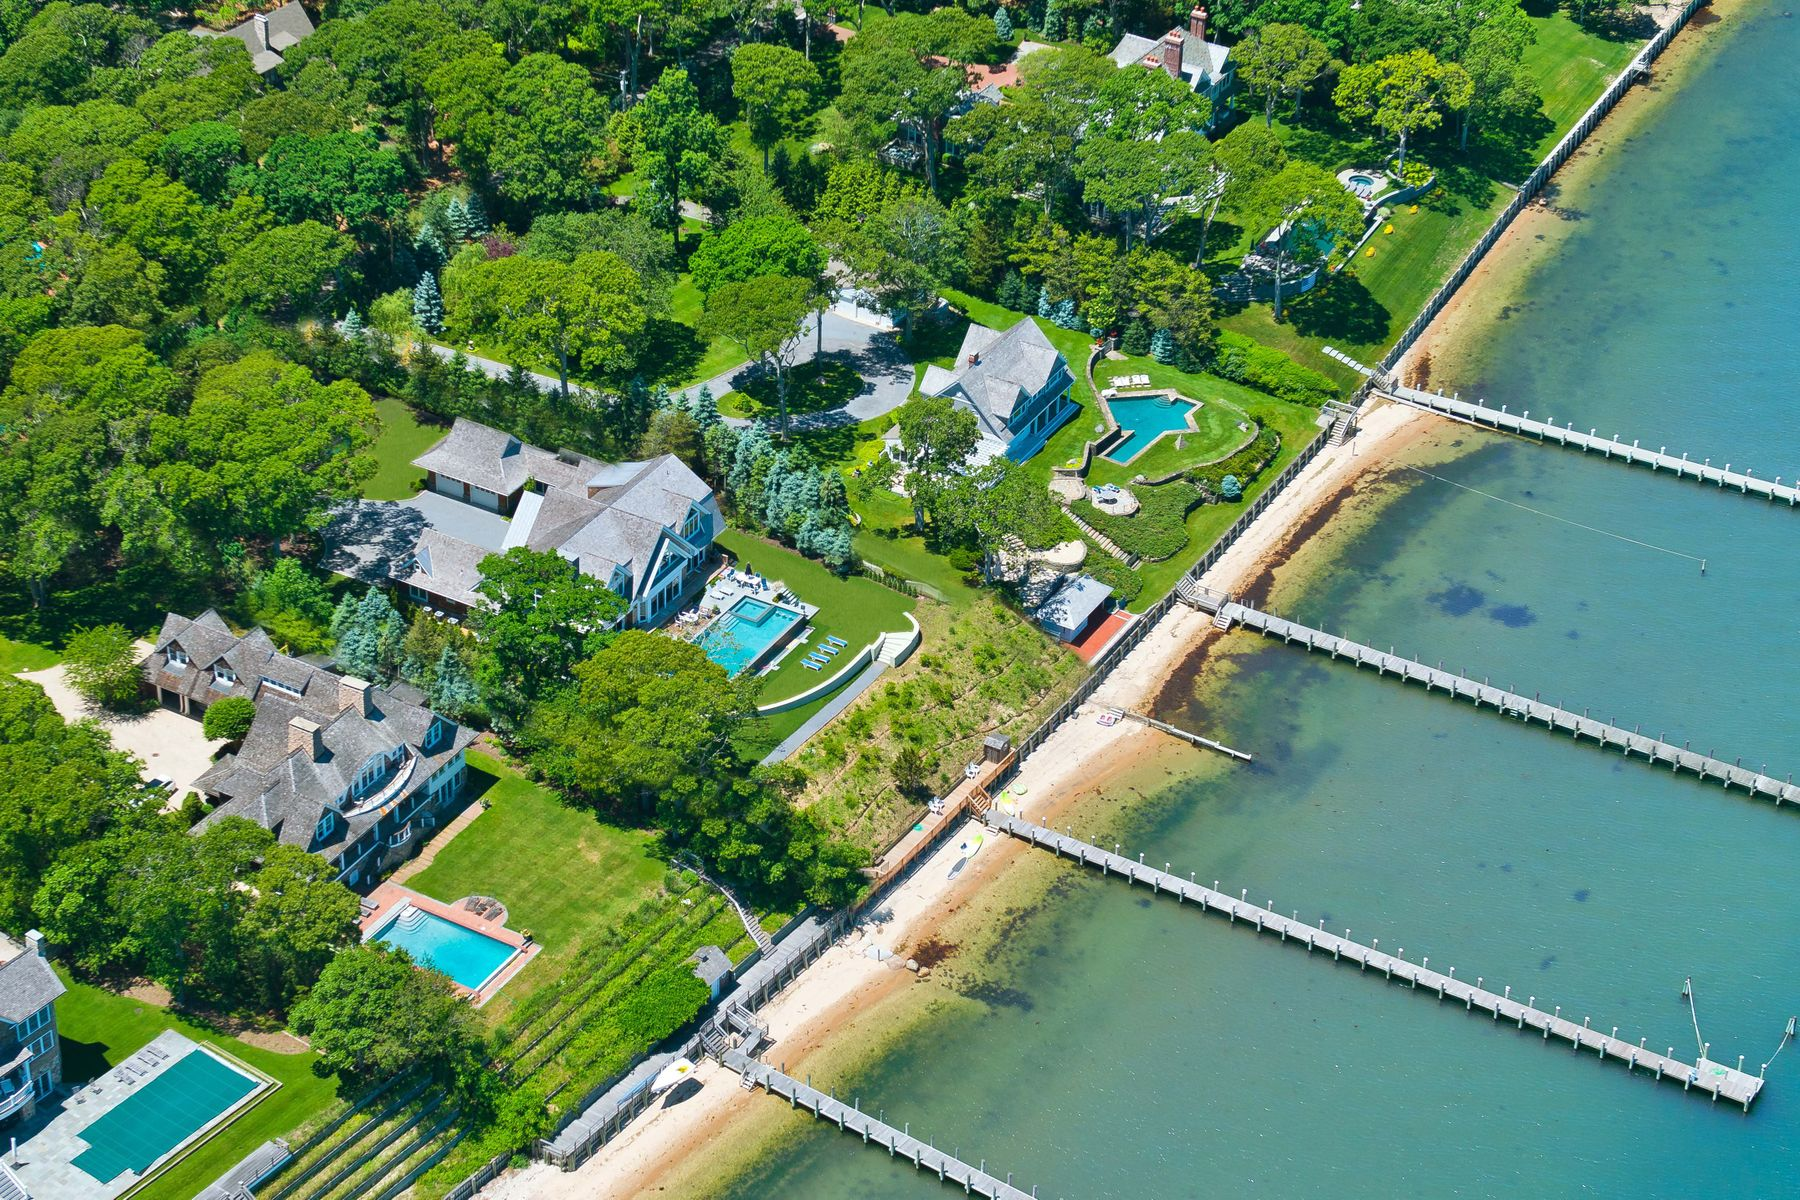 Single Family Homes for Sale at Sleek New Build with Deep Water Dock 44 Forest Road Sag Harbor, New York 11963 United States